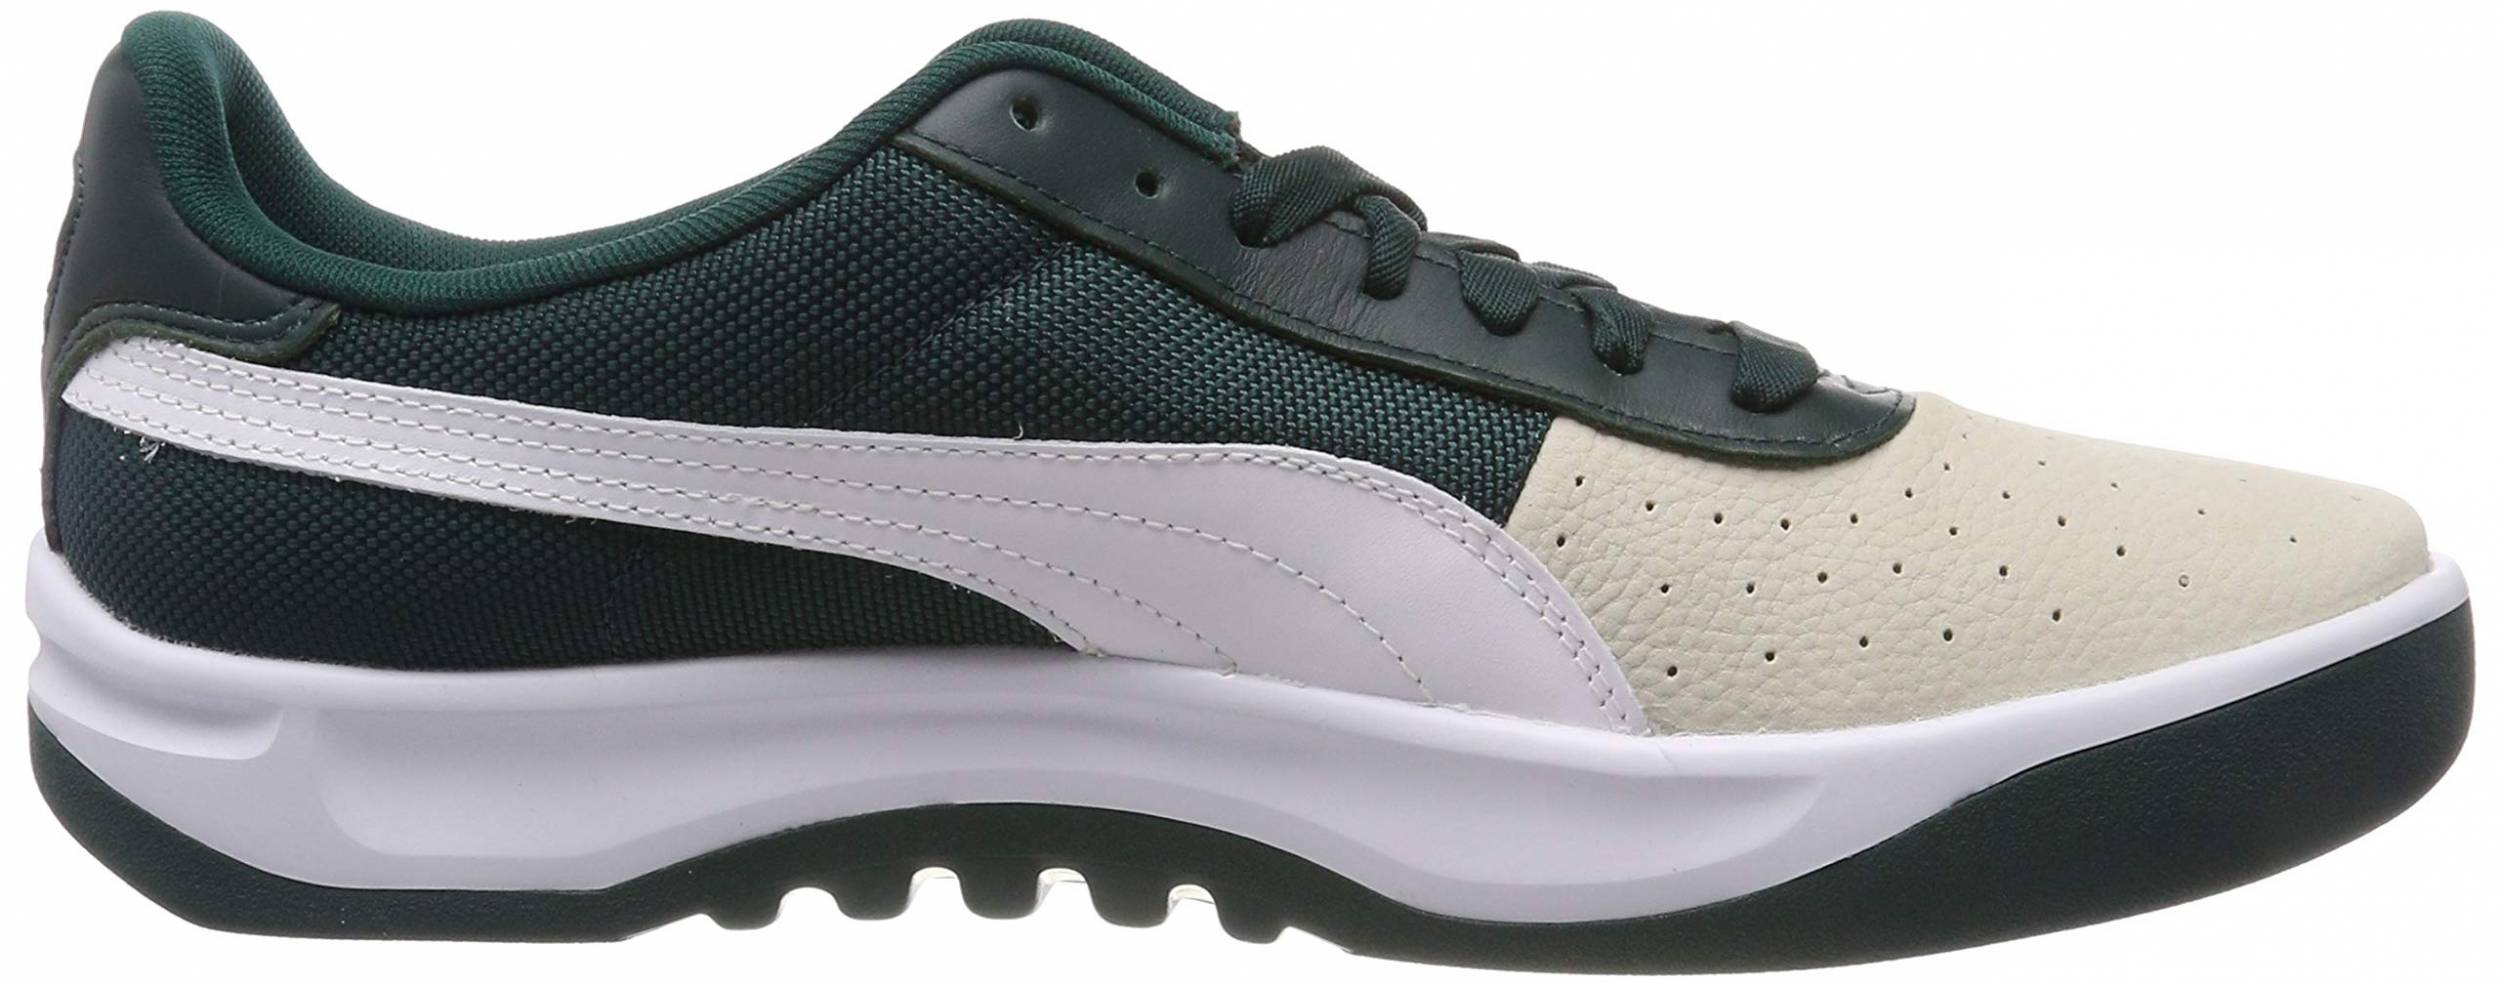 Puma California sneakers in white (only $45)   RunRepeat